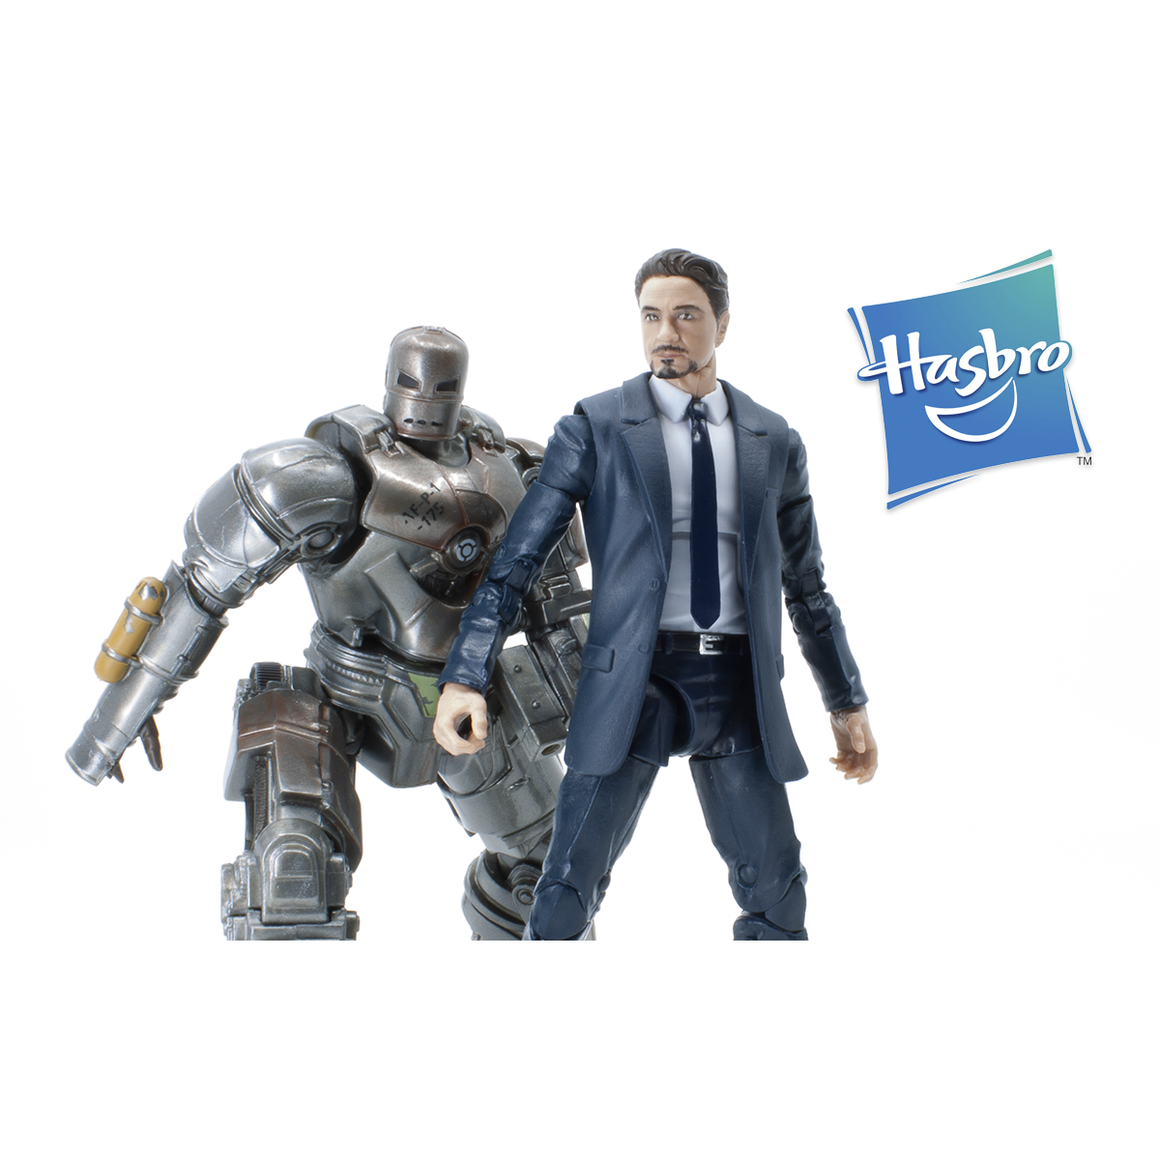 Marvel Legends MCU 10th Anniversary Tony Stark and Iron Man Mark I 6-Inch Action Figures - OCTOBER 2019